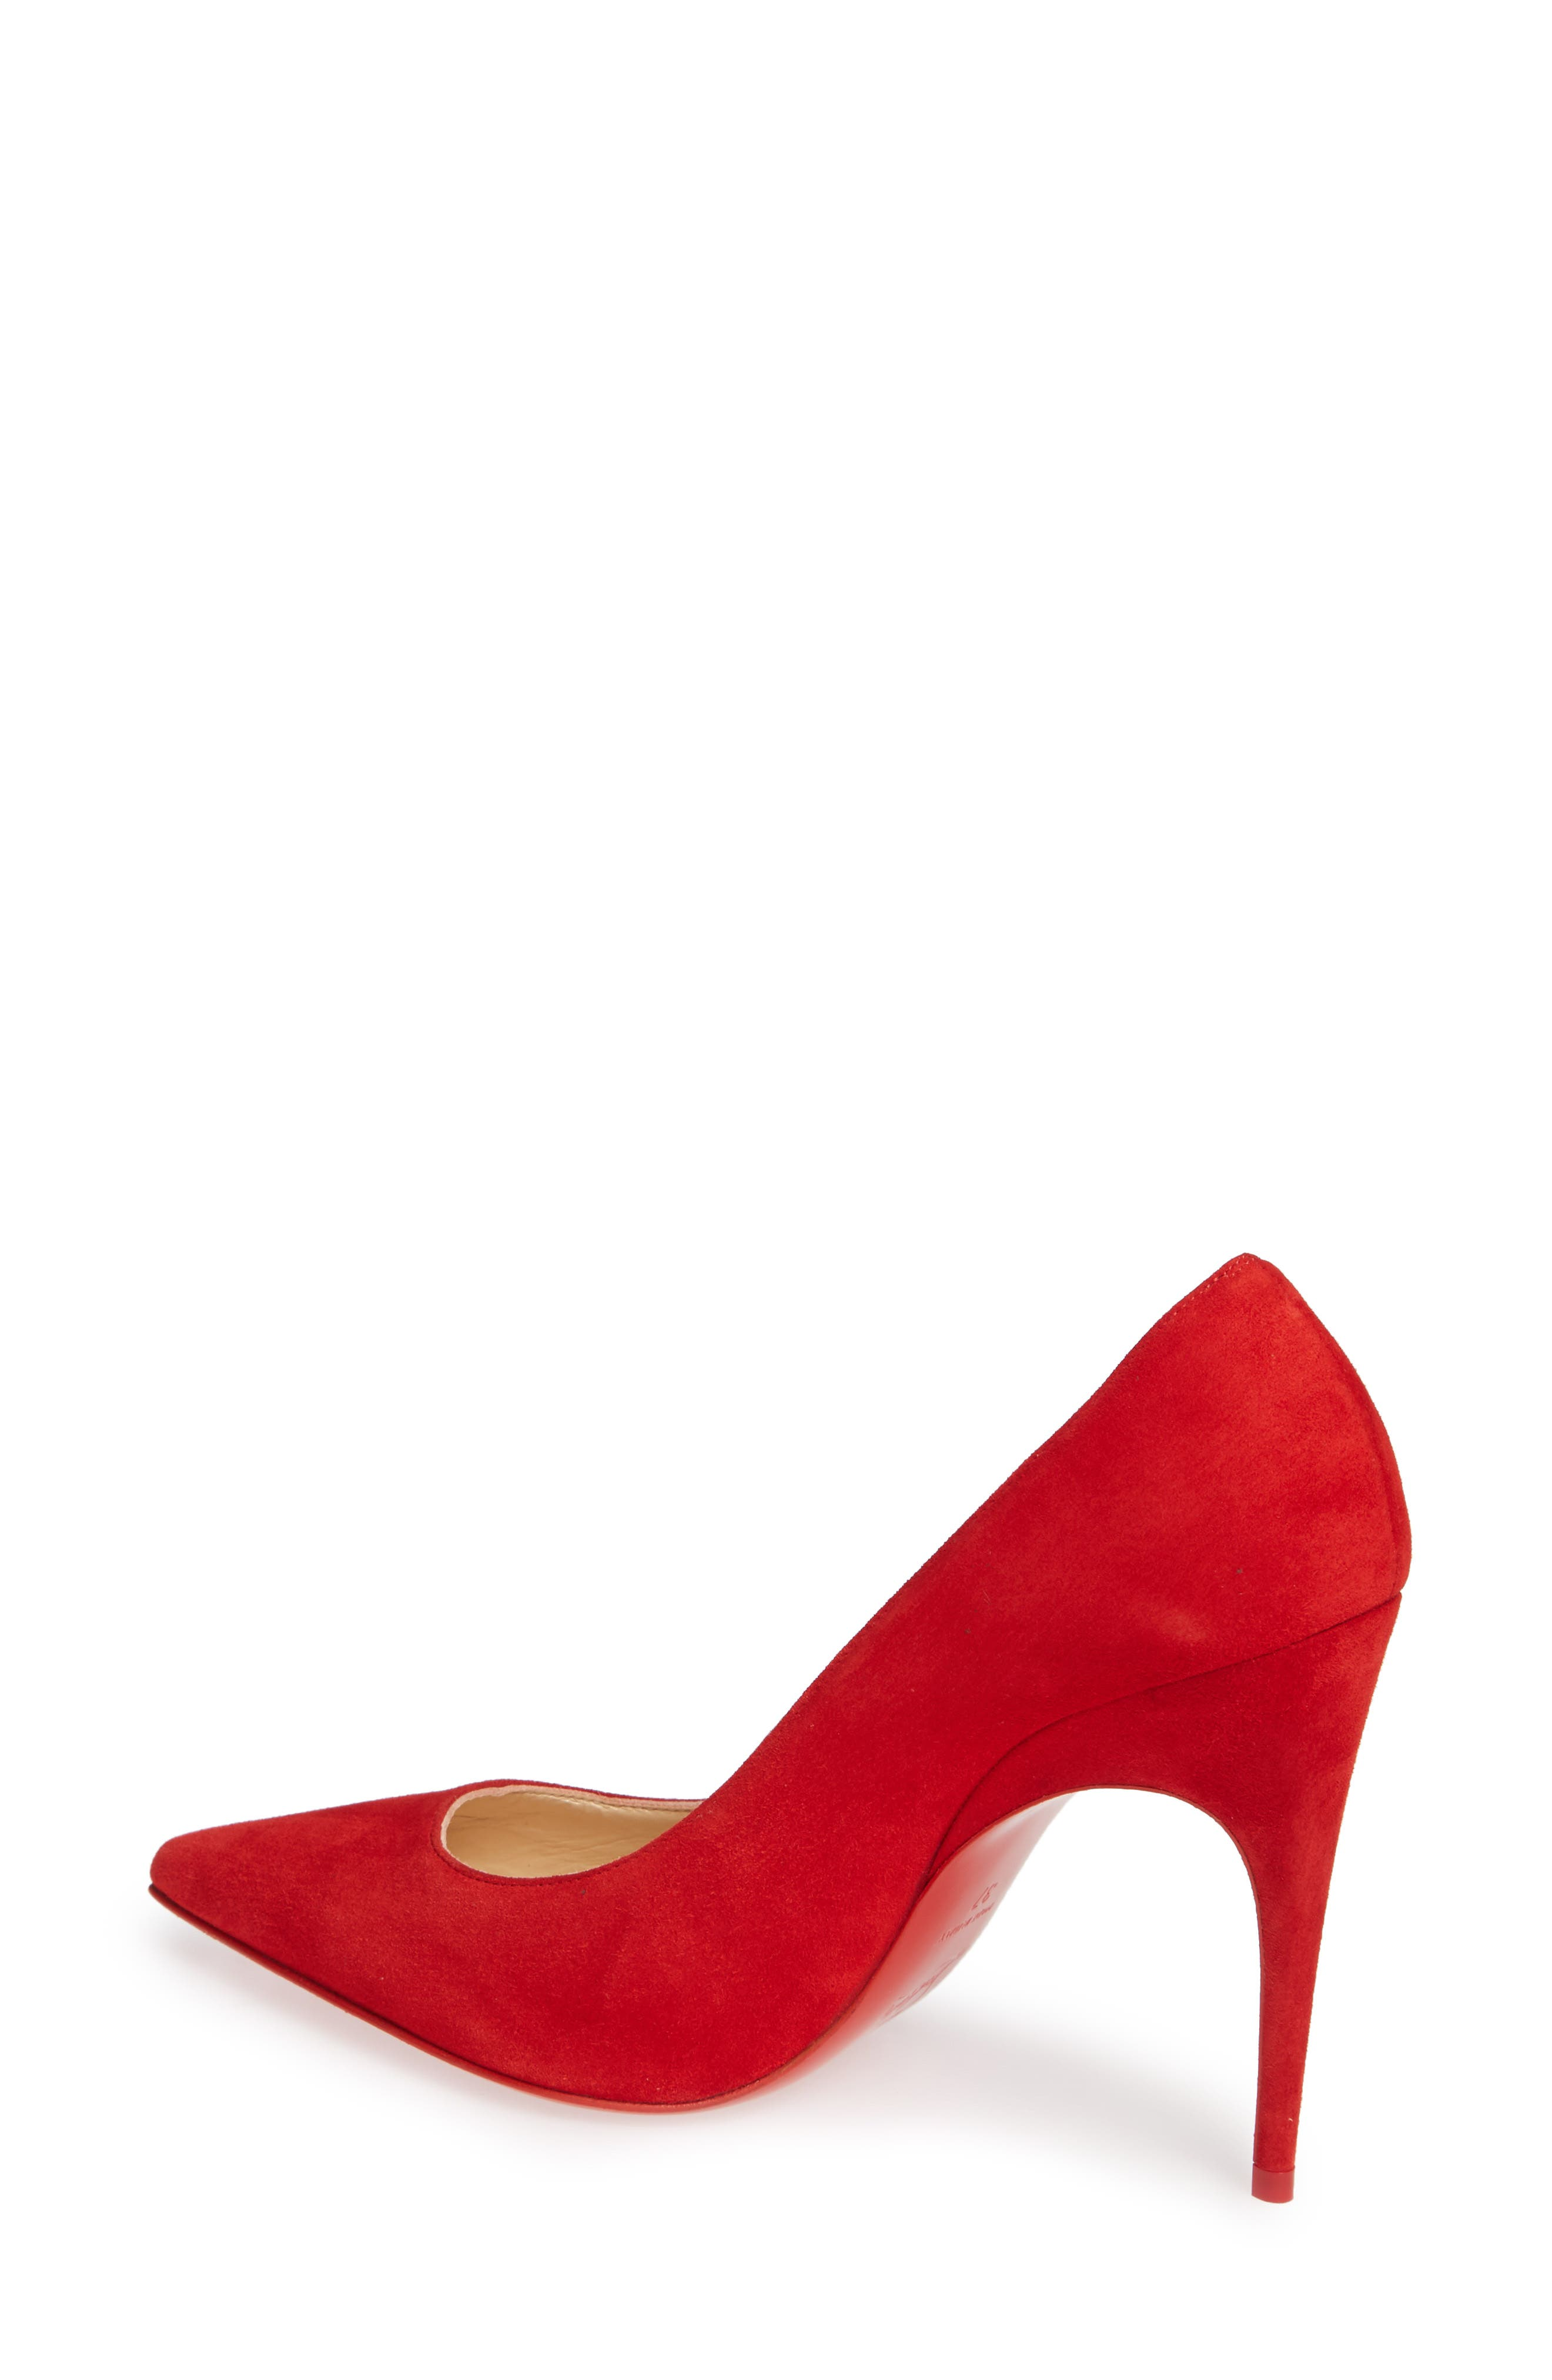 Alminette Pointy Toe Pump,                             Alternate thumbnail 2, color,                             LOUBI RED